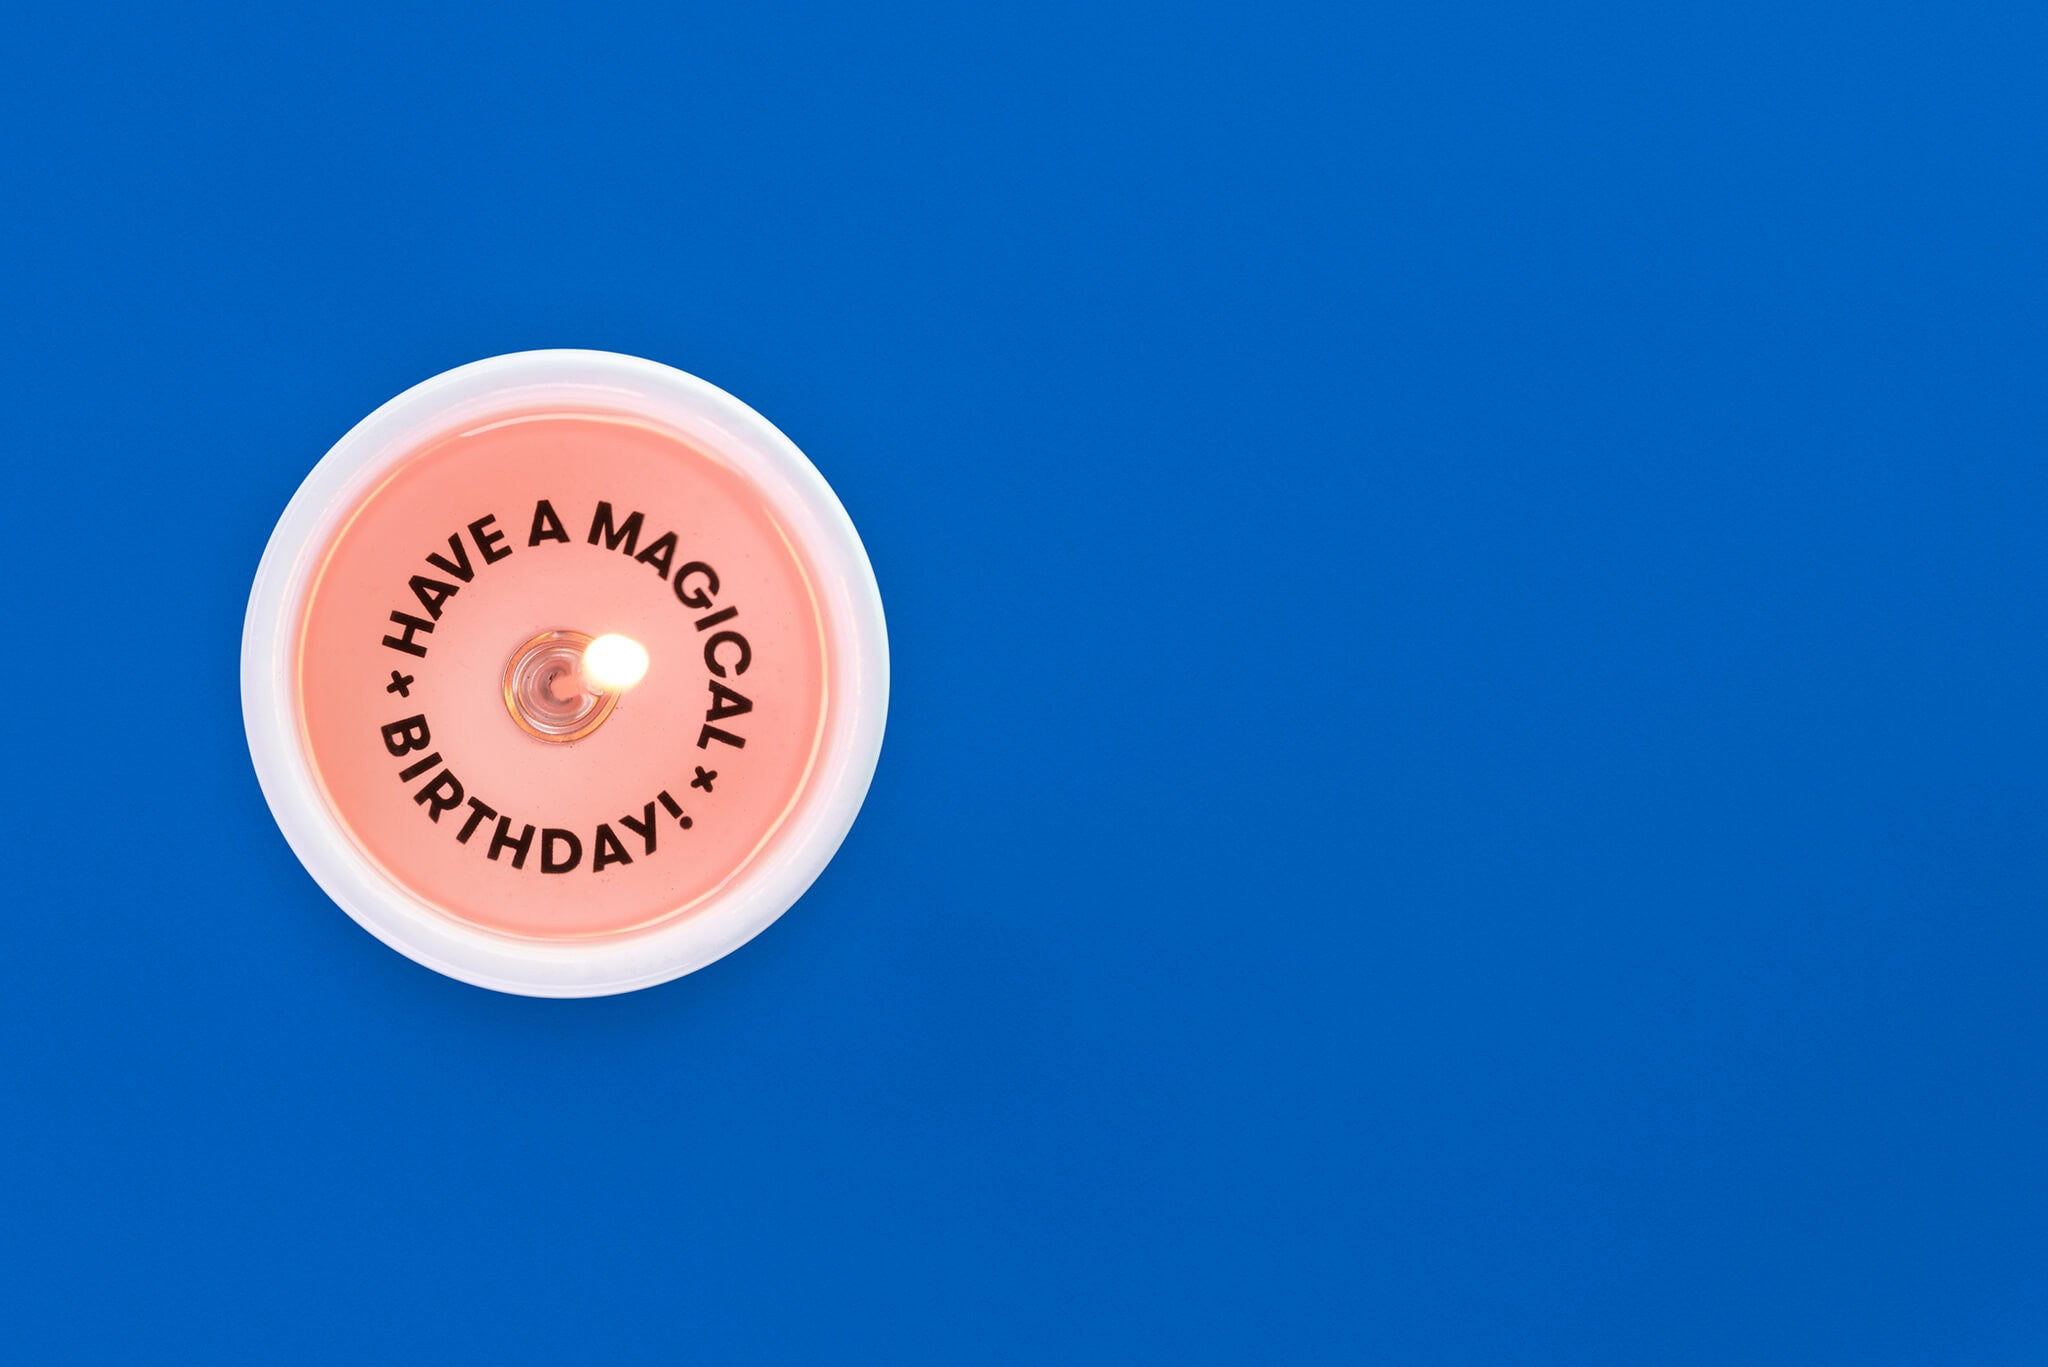 Secret message Candle - Have A Magical Birthday!